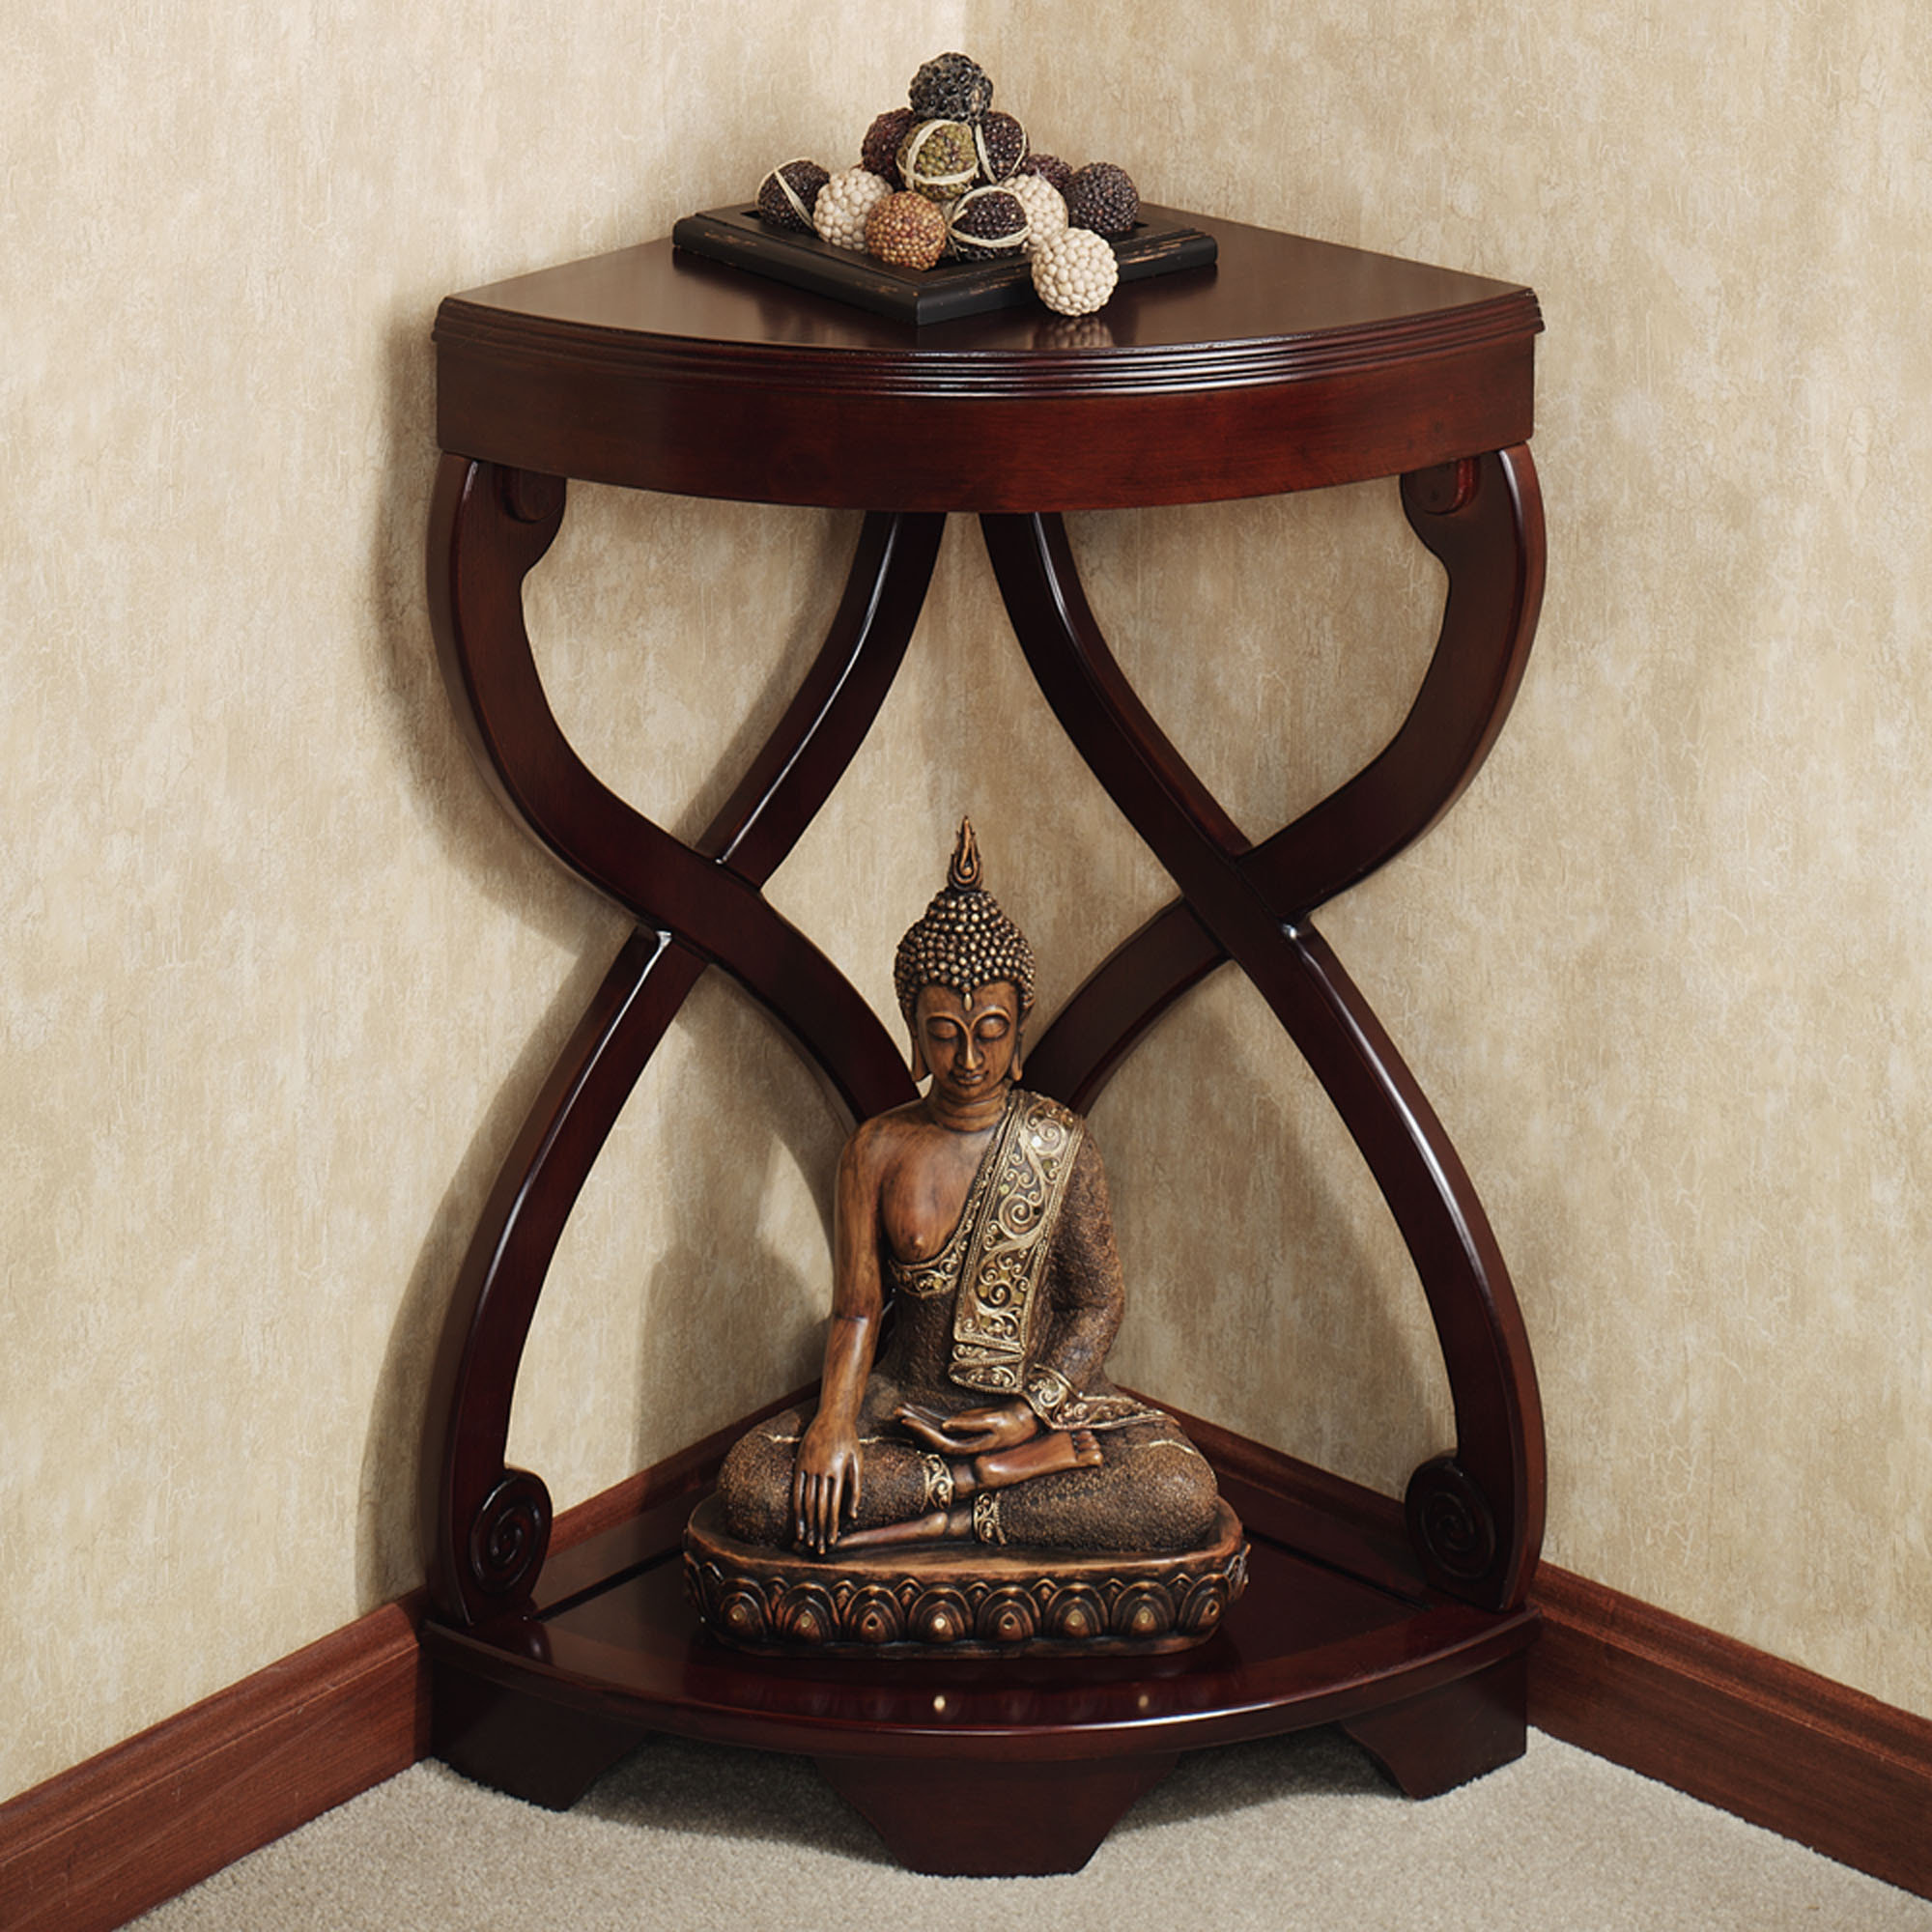 small corner accent table with drawer aruza furniture unique tables espresso color paxton wooden design and buddha statue awesome using not bathroom for storage easy runner